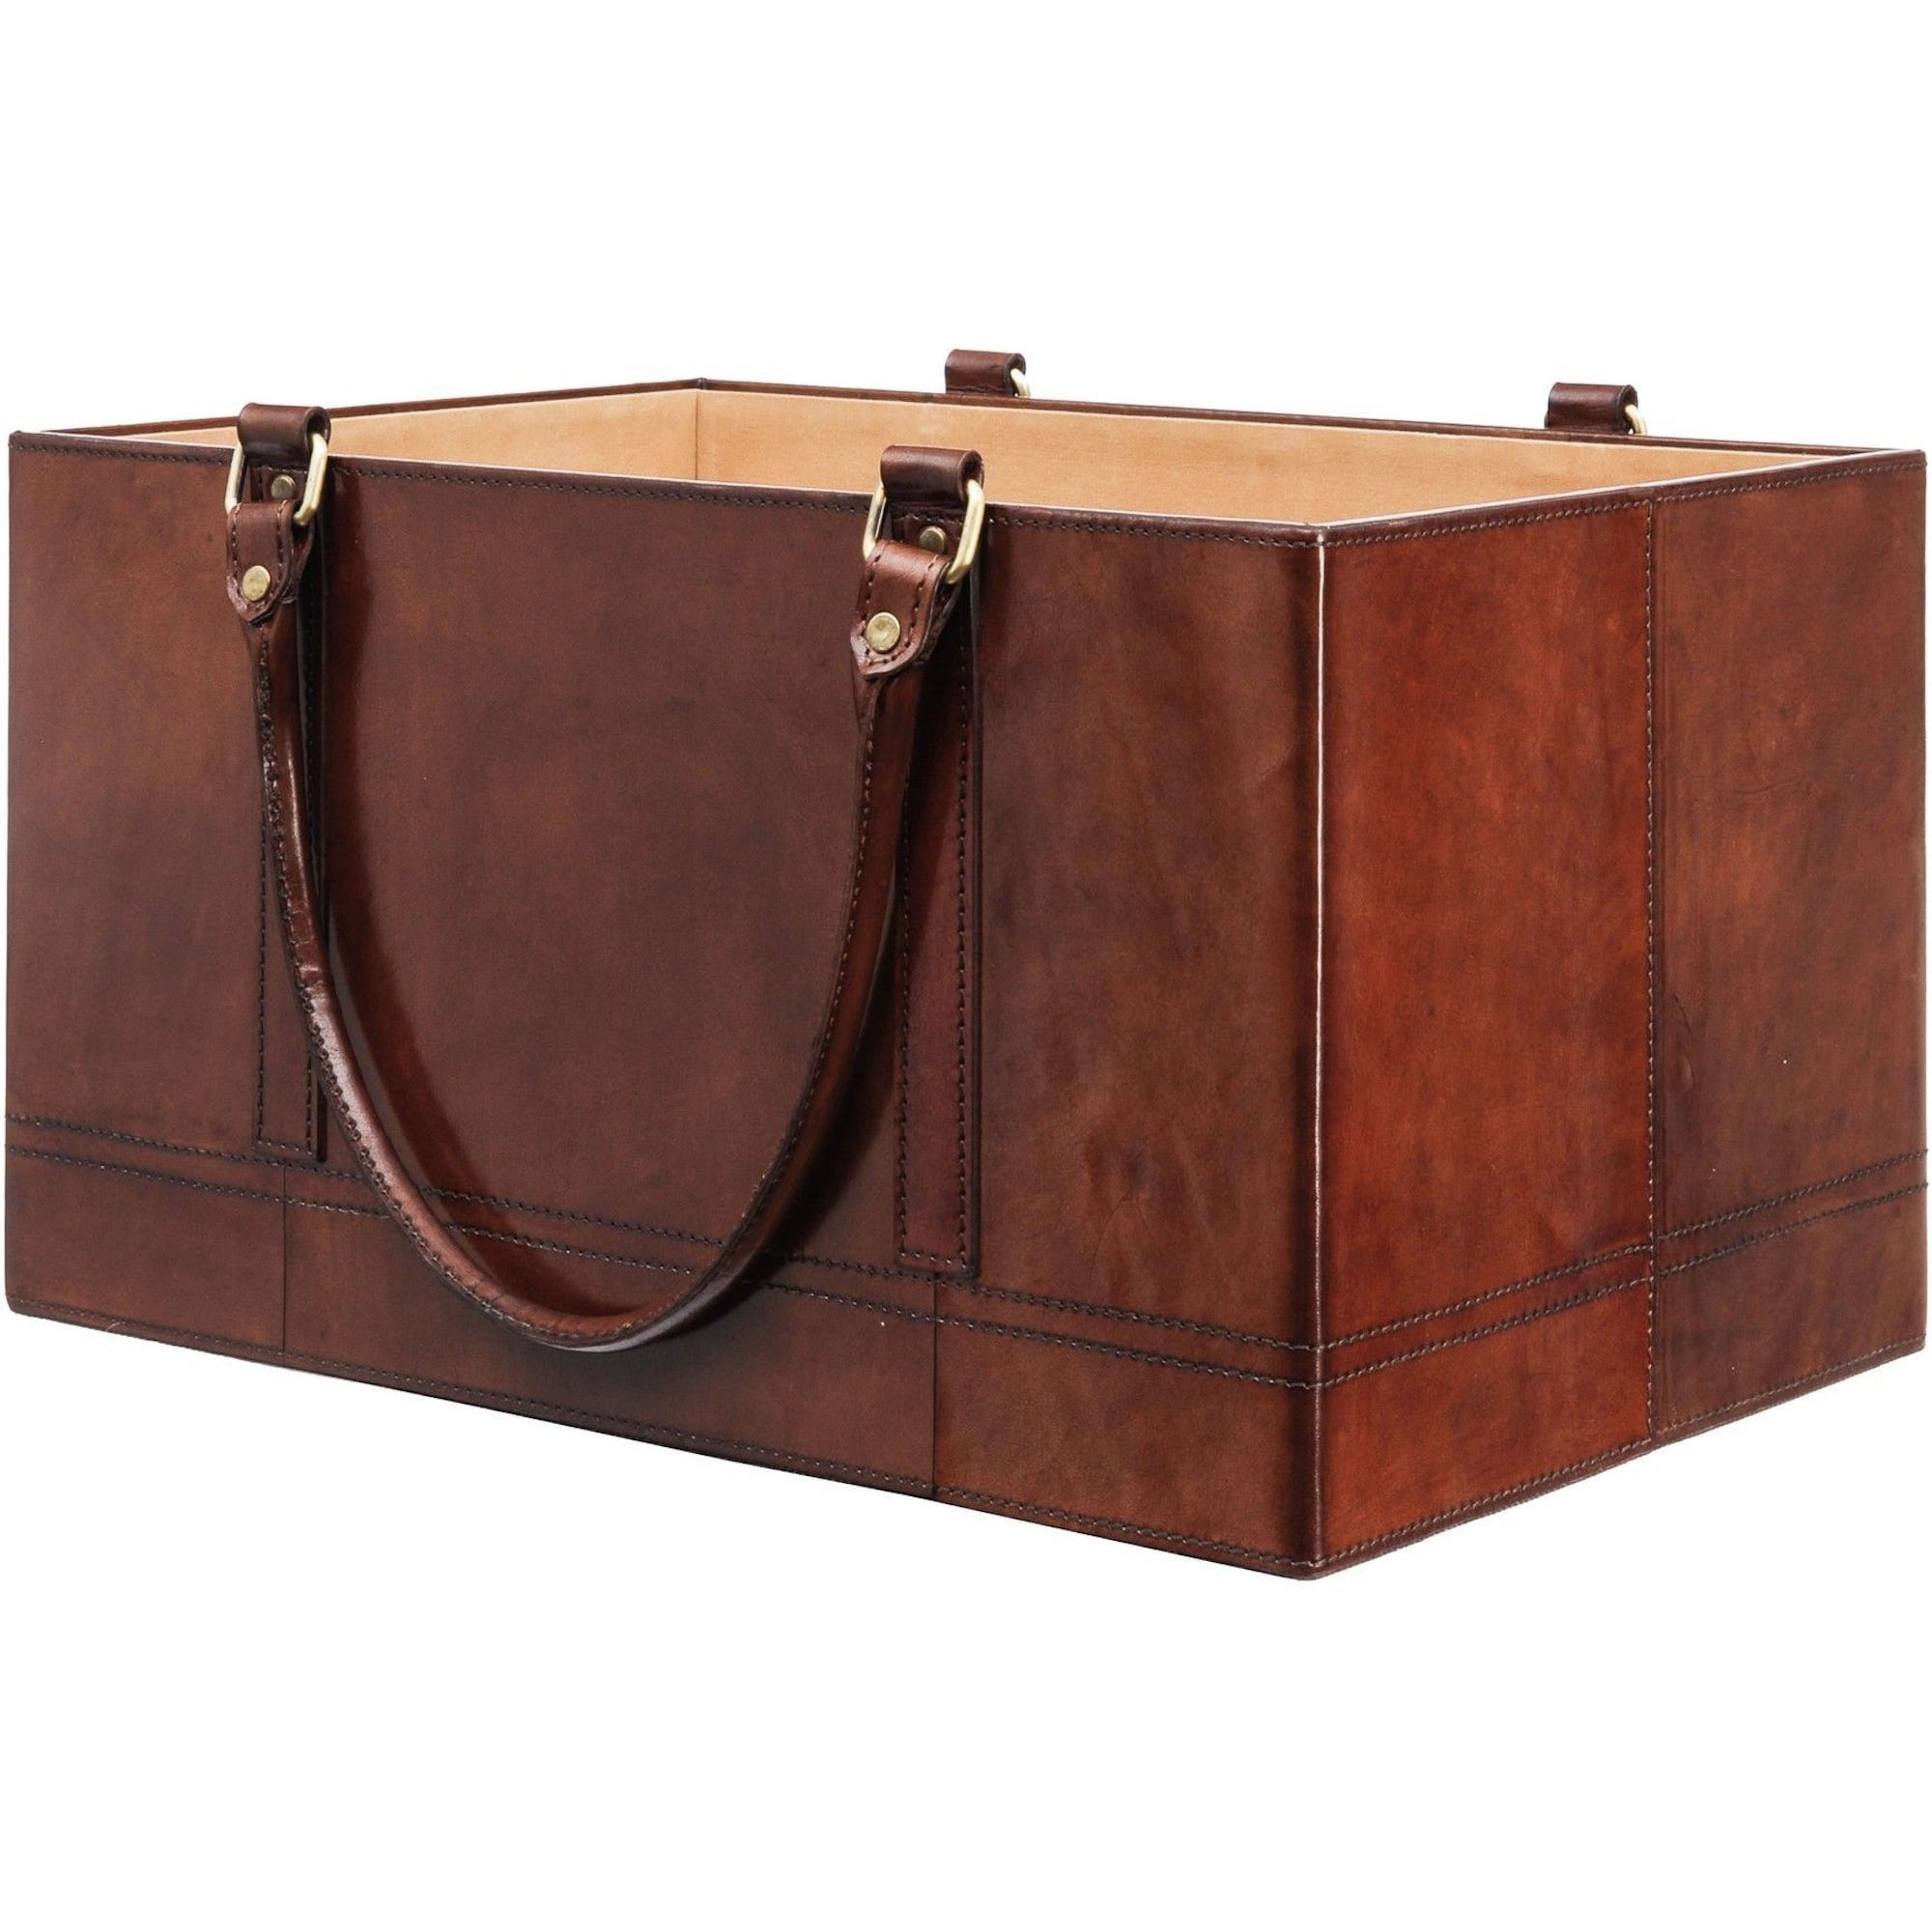 Morton Stitched Leather Magazine Box Home Travel From